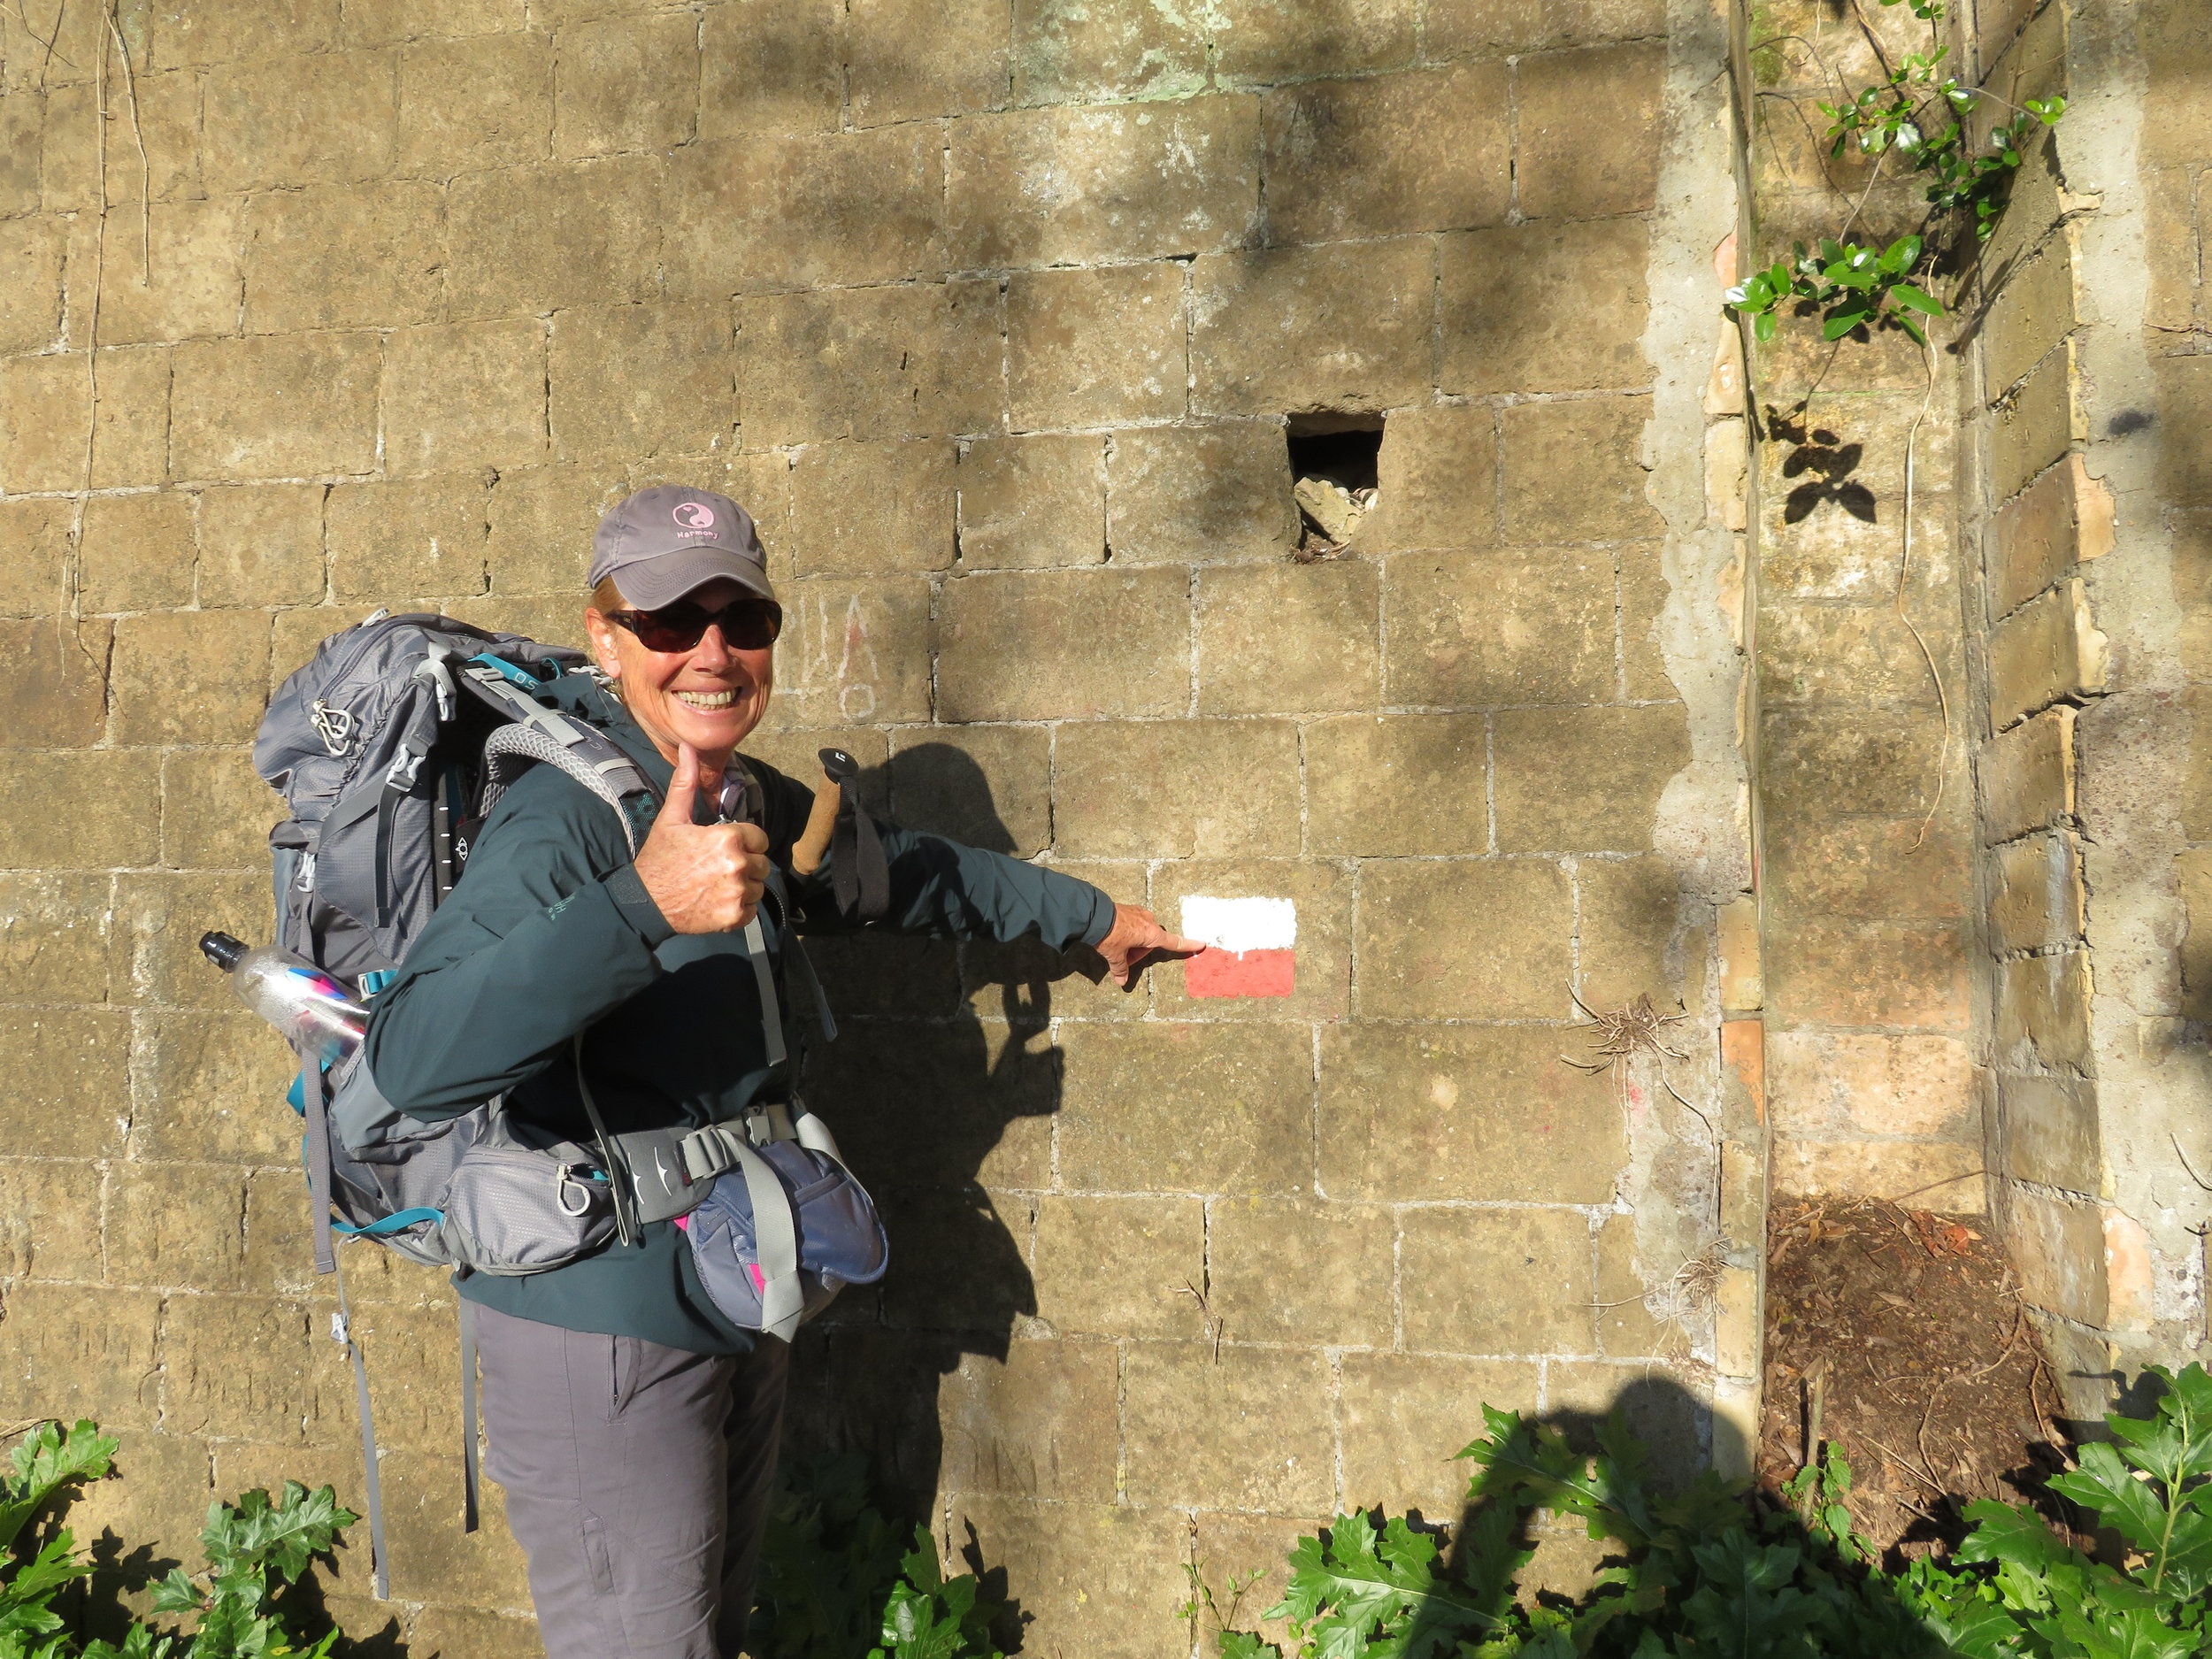 We were elated to spot our first Via Francigena trail marker.